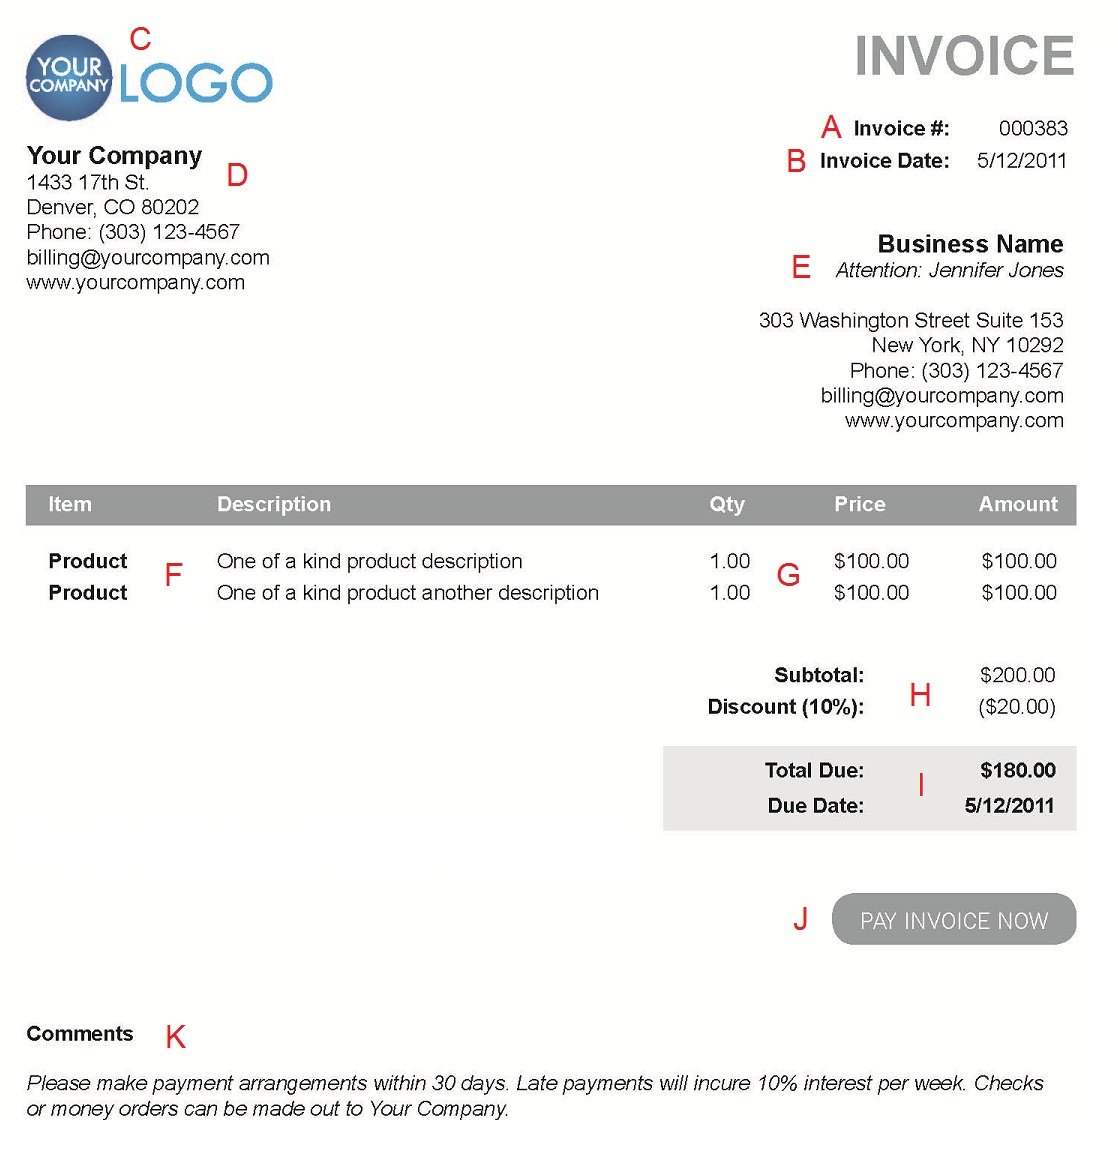 Hucareus  Winning The  Different Sections Of An Electronic Payment Invoice With Hot A  With Comely Google Apps Receipt Also House Rent Receipt Format Pdf In Addition Receipt Acknowledgement Sample And Fake Medical Receipts As Well As House Rent Receipt Pdf Additionally Rent Receipt Copy From Paysimplecom With Hucareus  Hot The  Different Sections Of An Electronic Payment Invoice With Comely A  And Winning Google Apps Receipt Also House Rent Receipt Format Pdf In Addition Receipt Acknowledgement Sample From Paysimplecom